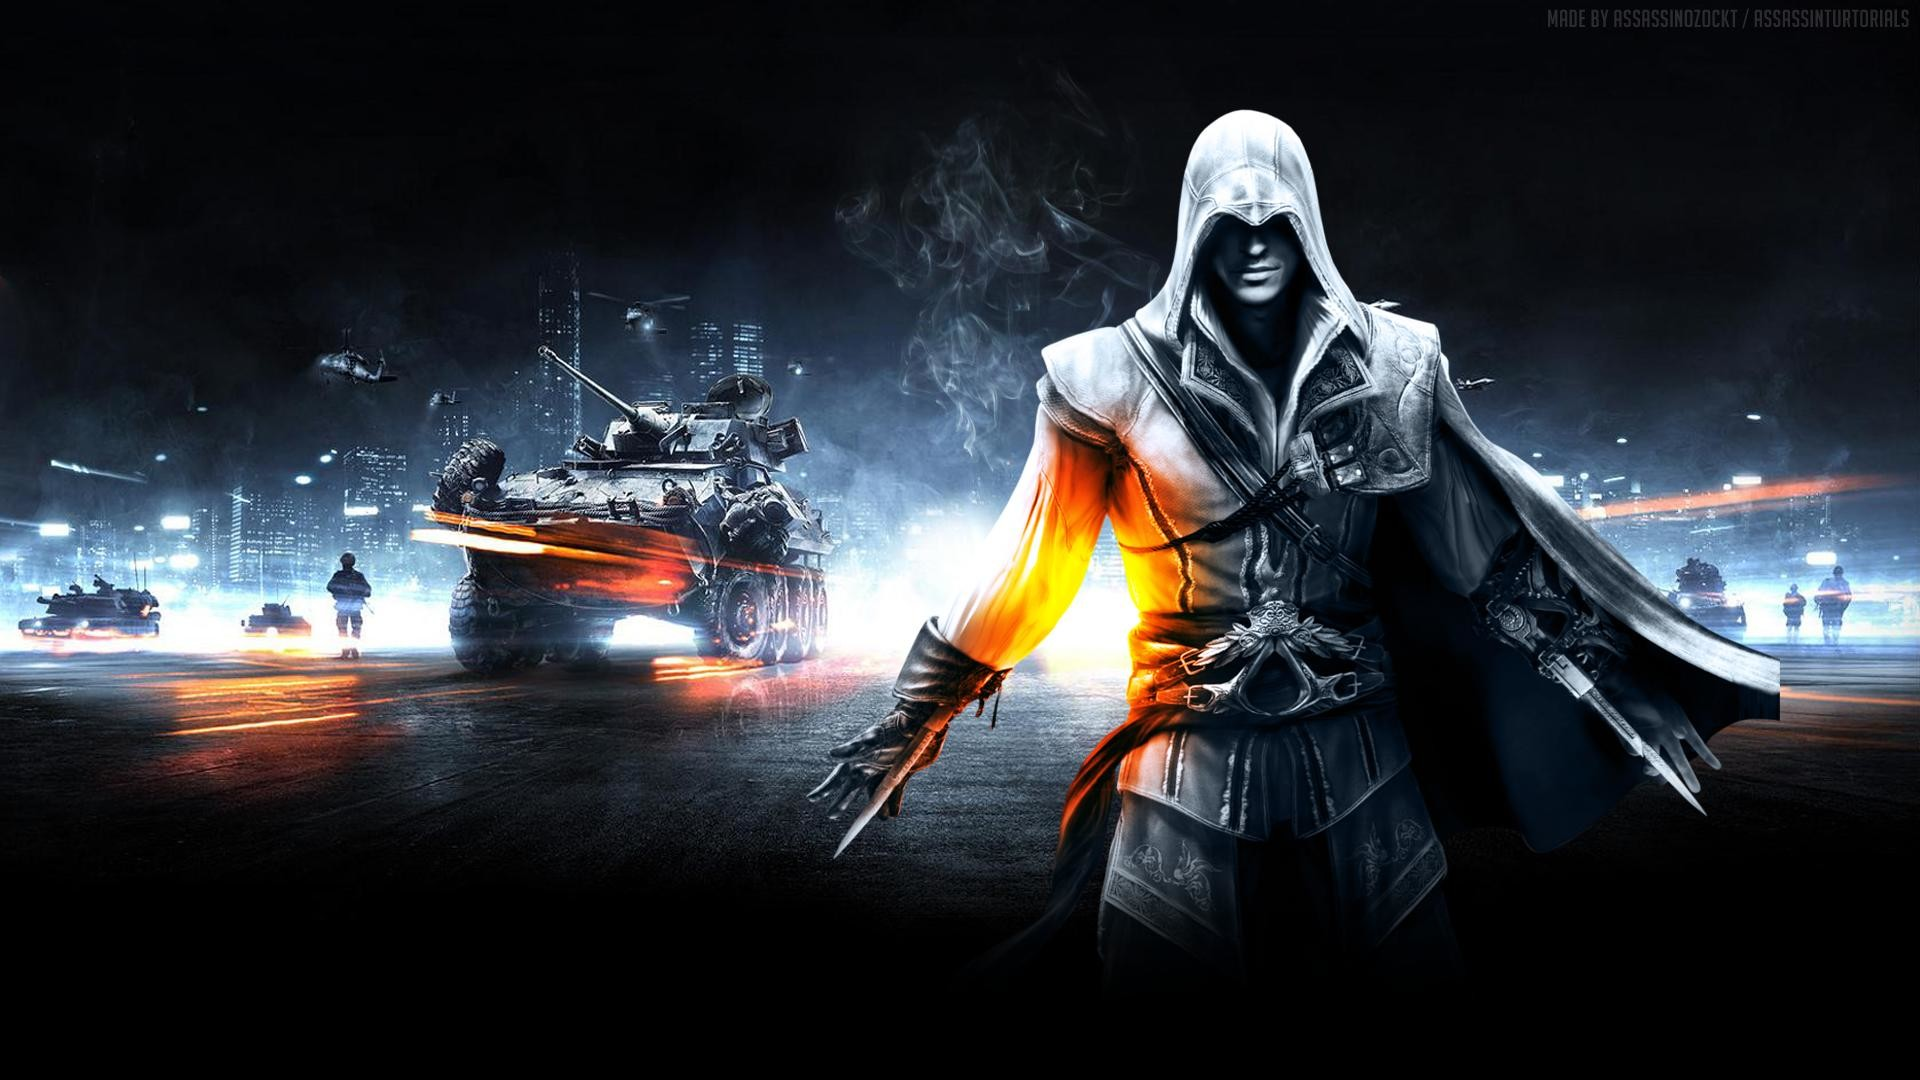 Games Wallpapers, PC, Mac, Laptop, Tablet, Mobile Phone Pictures, T4